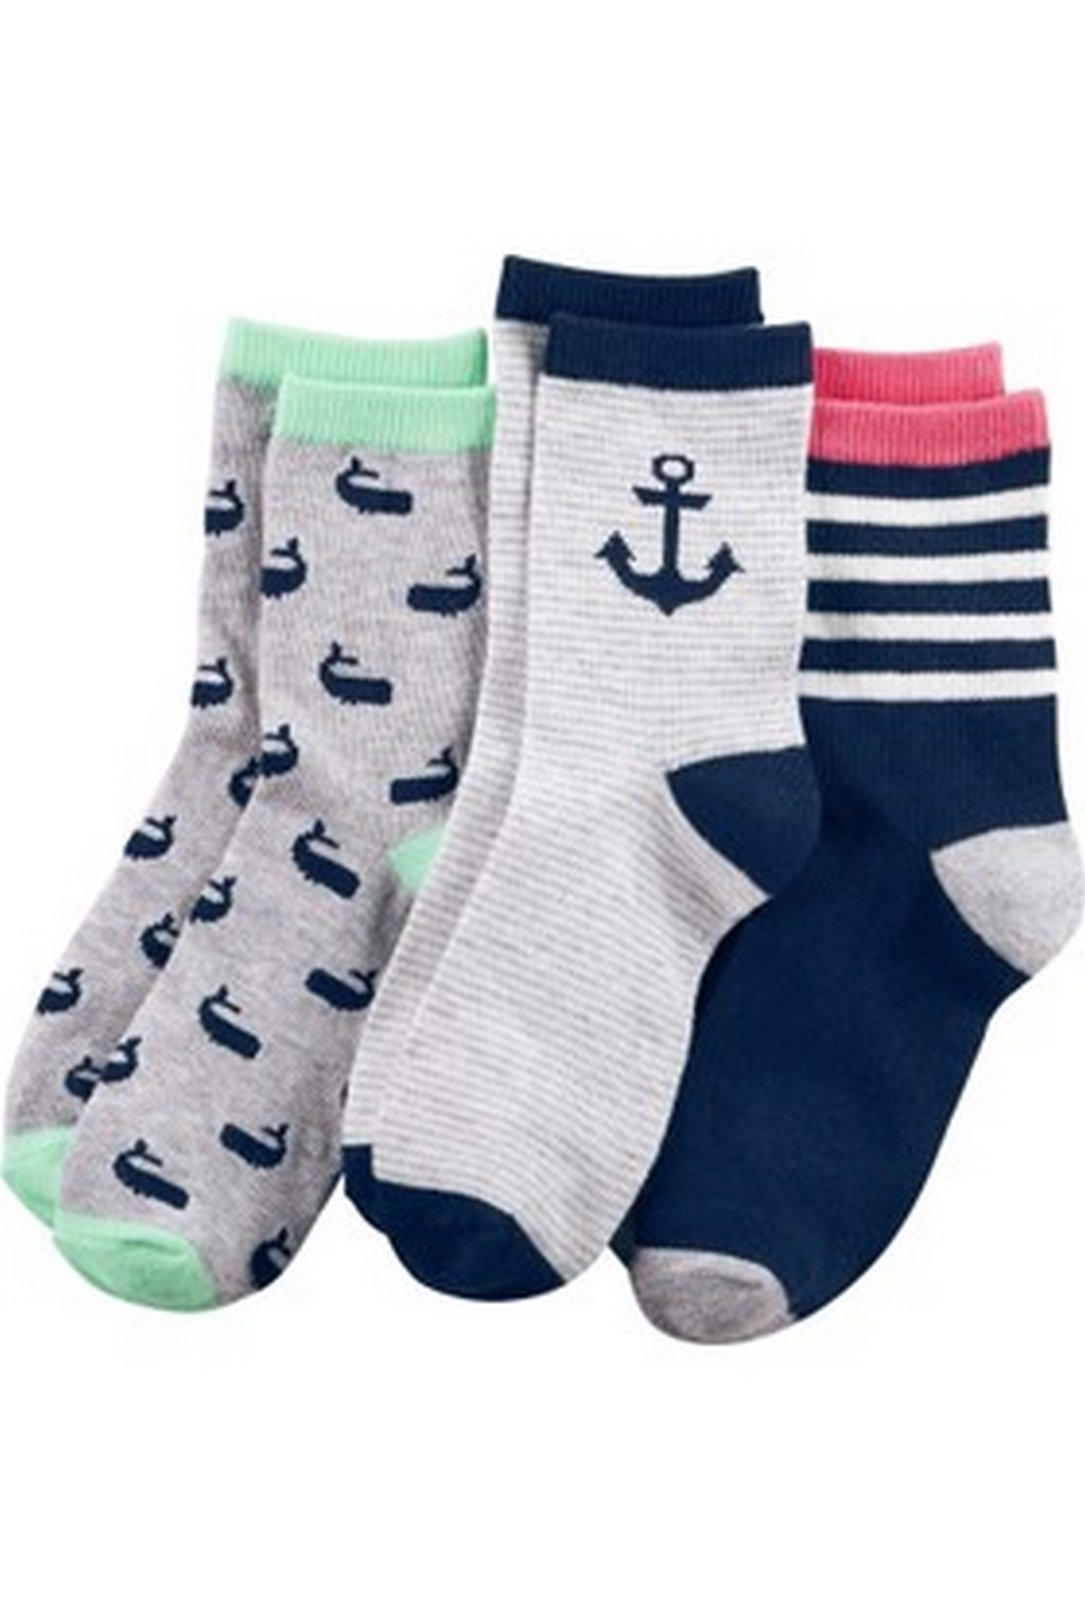 Carter's 3-Pack Socks  Modelo 17252